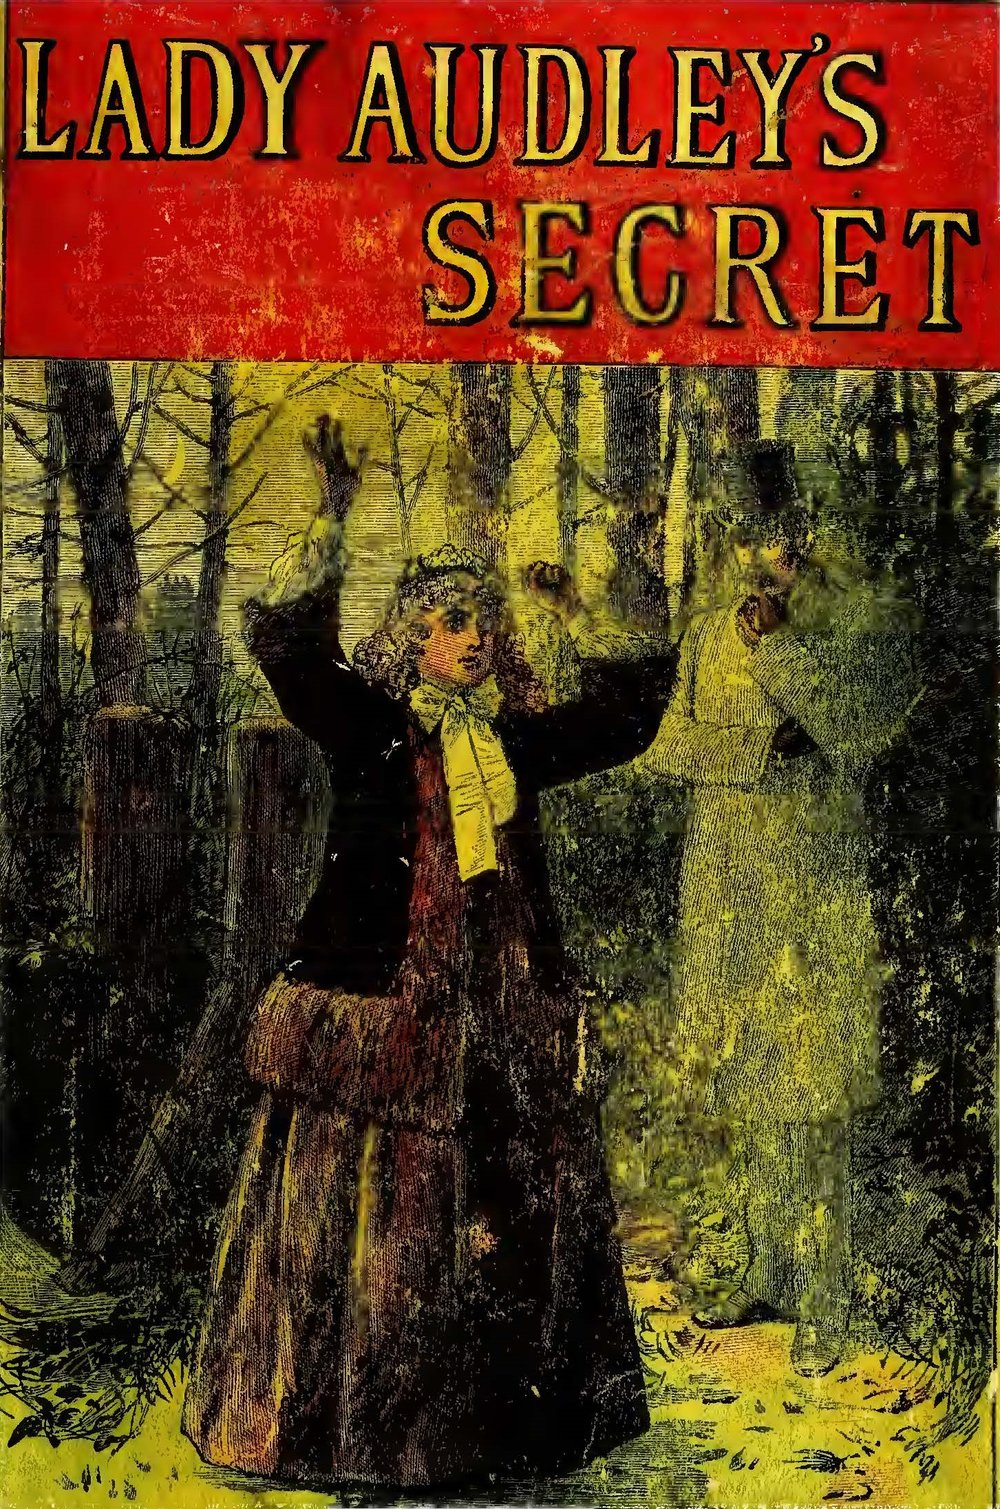 Yellowback cover of  Lady Audley's Secret  by Mary Elizabeth Braddon. Source: archive.org/details/36163849.2555.emory.edu